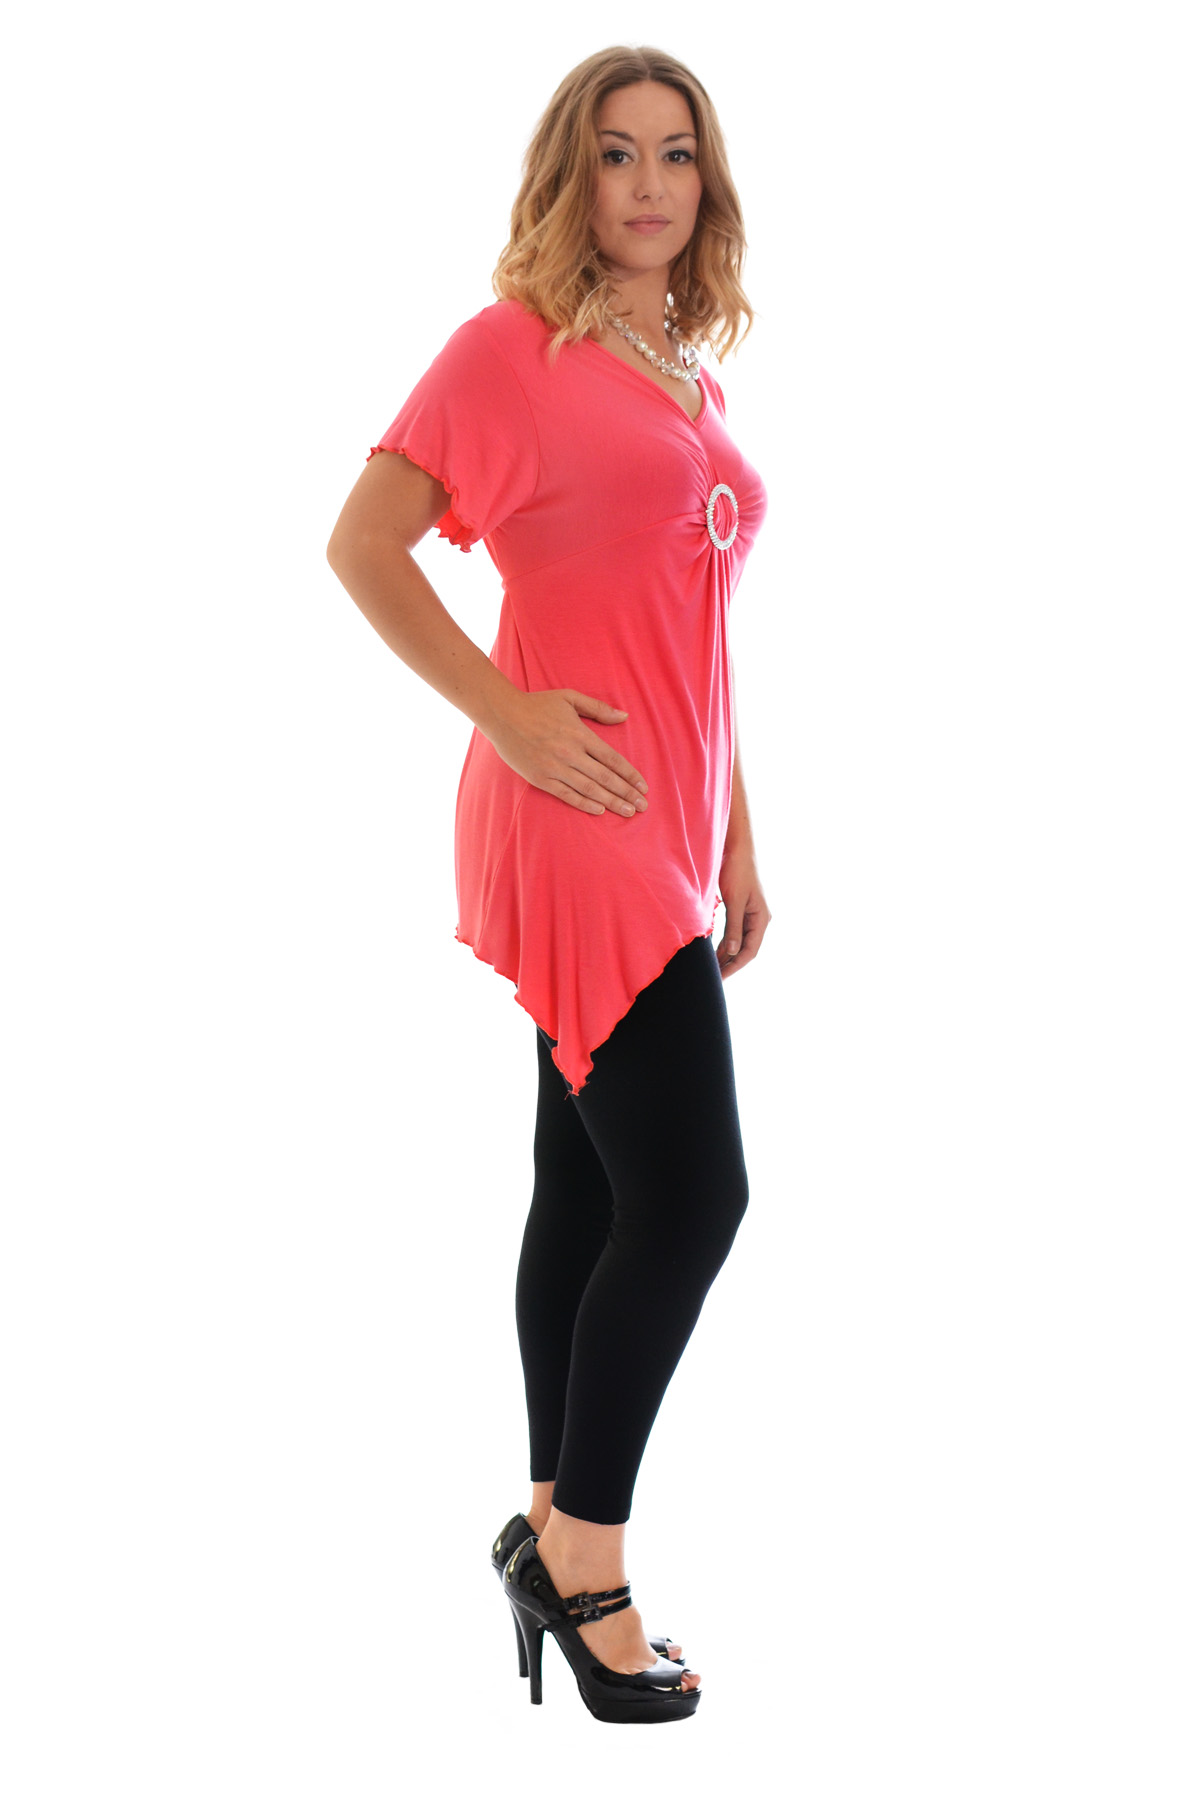 New-Womens-Plus-Size-Top-Ladies-T-Shirt-Buckle-Stud-A-Line-Asymmetric-Nouvelle thumbnail 51